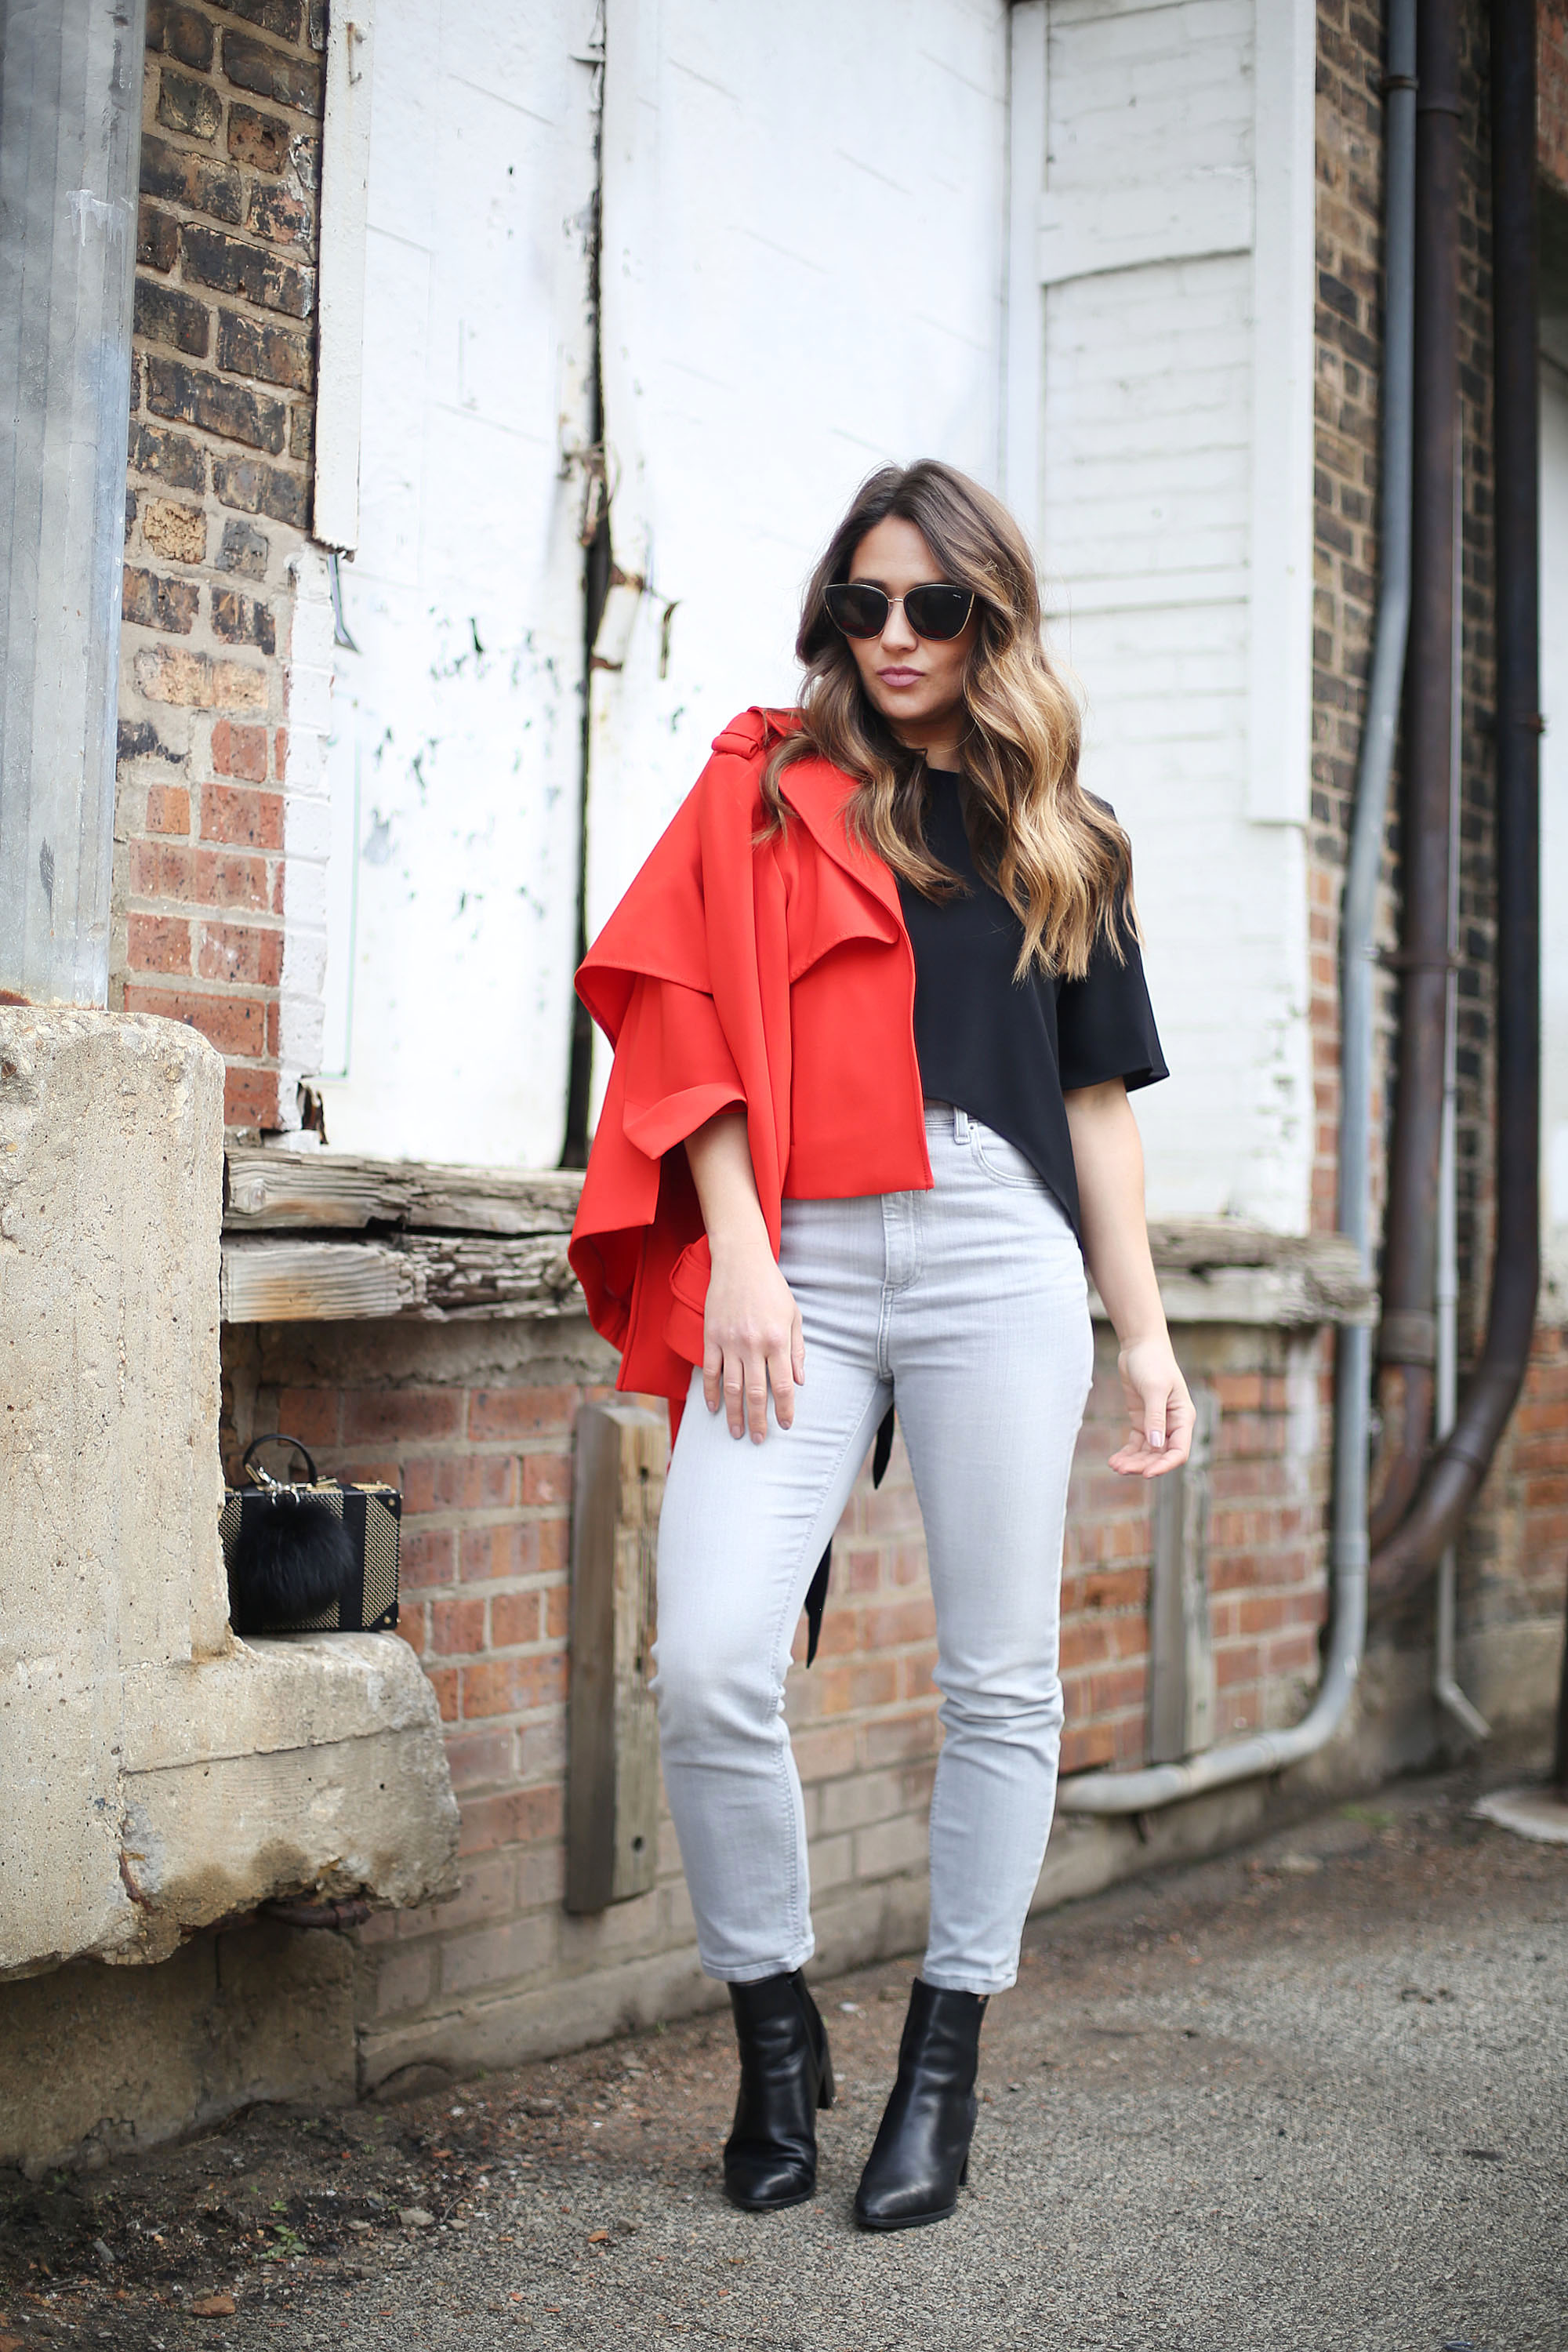 outfit-of-the-day-grey-jeans-black-top-red-blazer